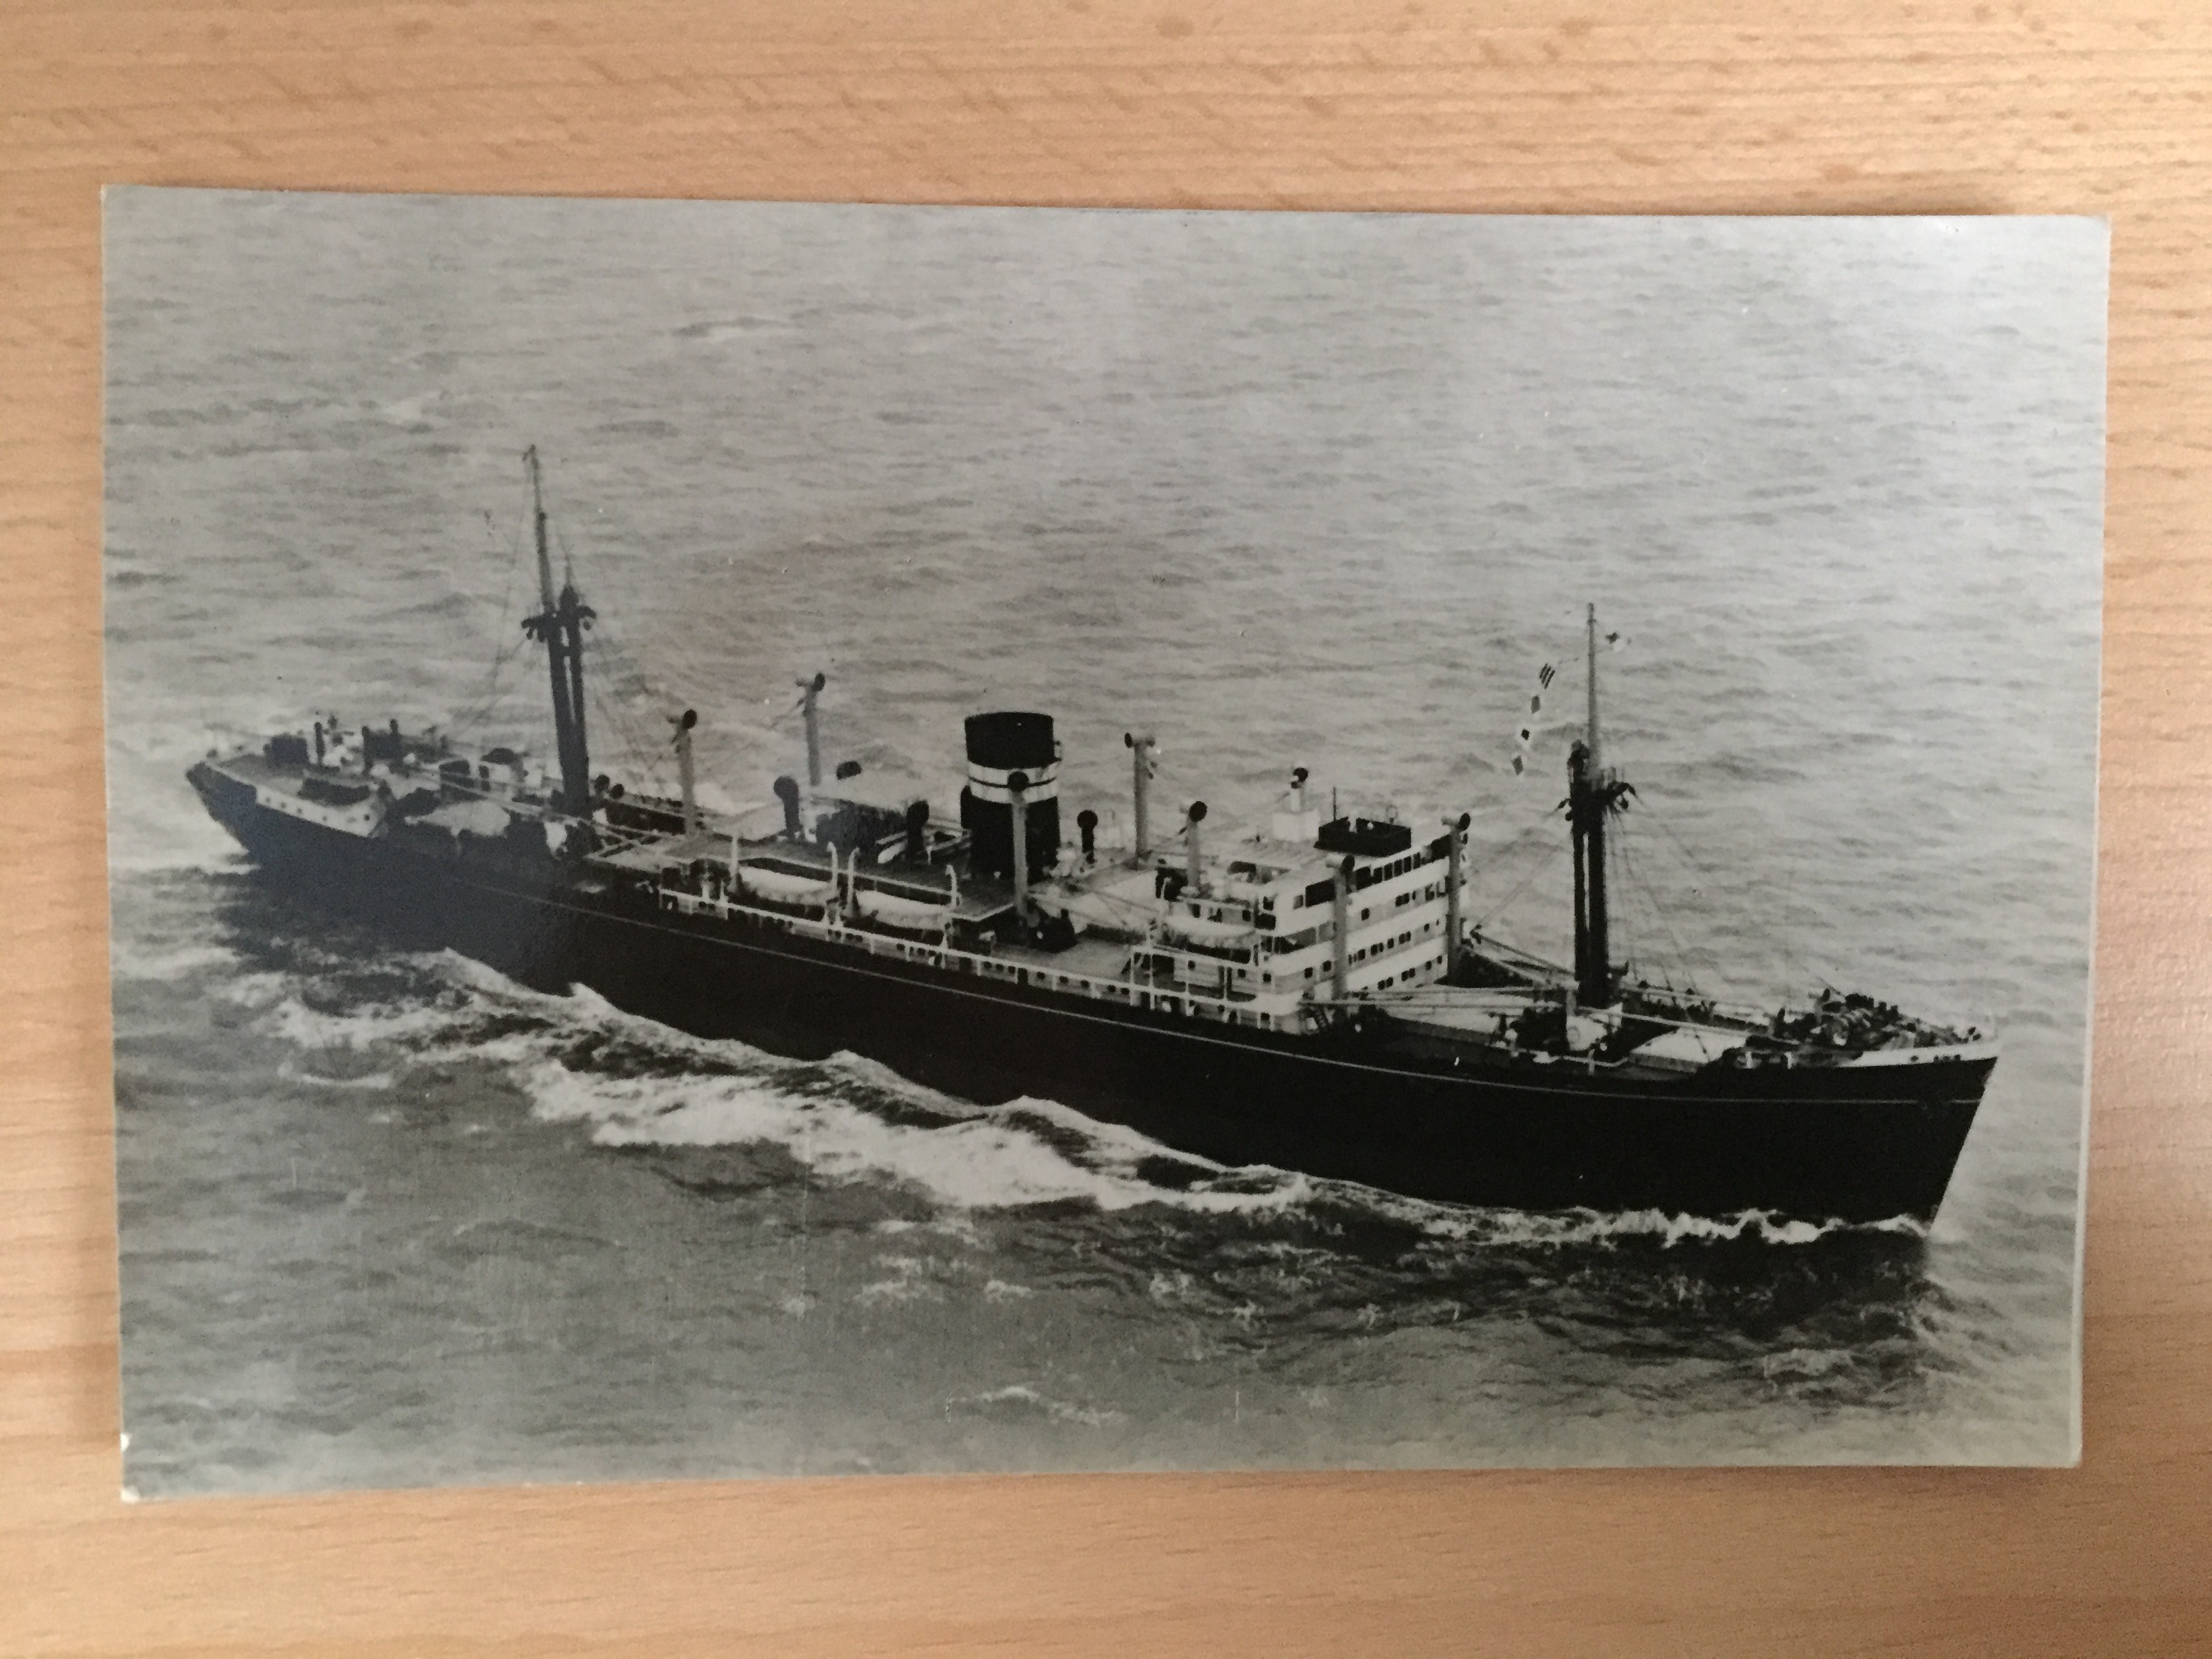 B/W POSTCARD FROM THE VESSEL CANARA FROM THE BRITISH INDIA STEAM NAVIGATION COMPANY